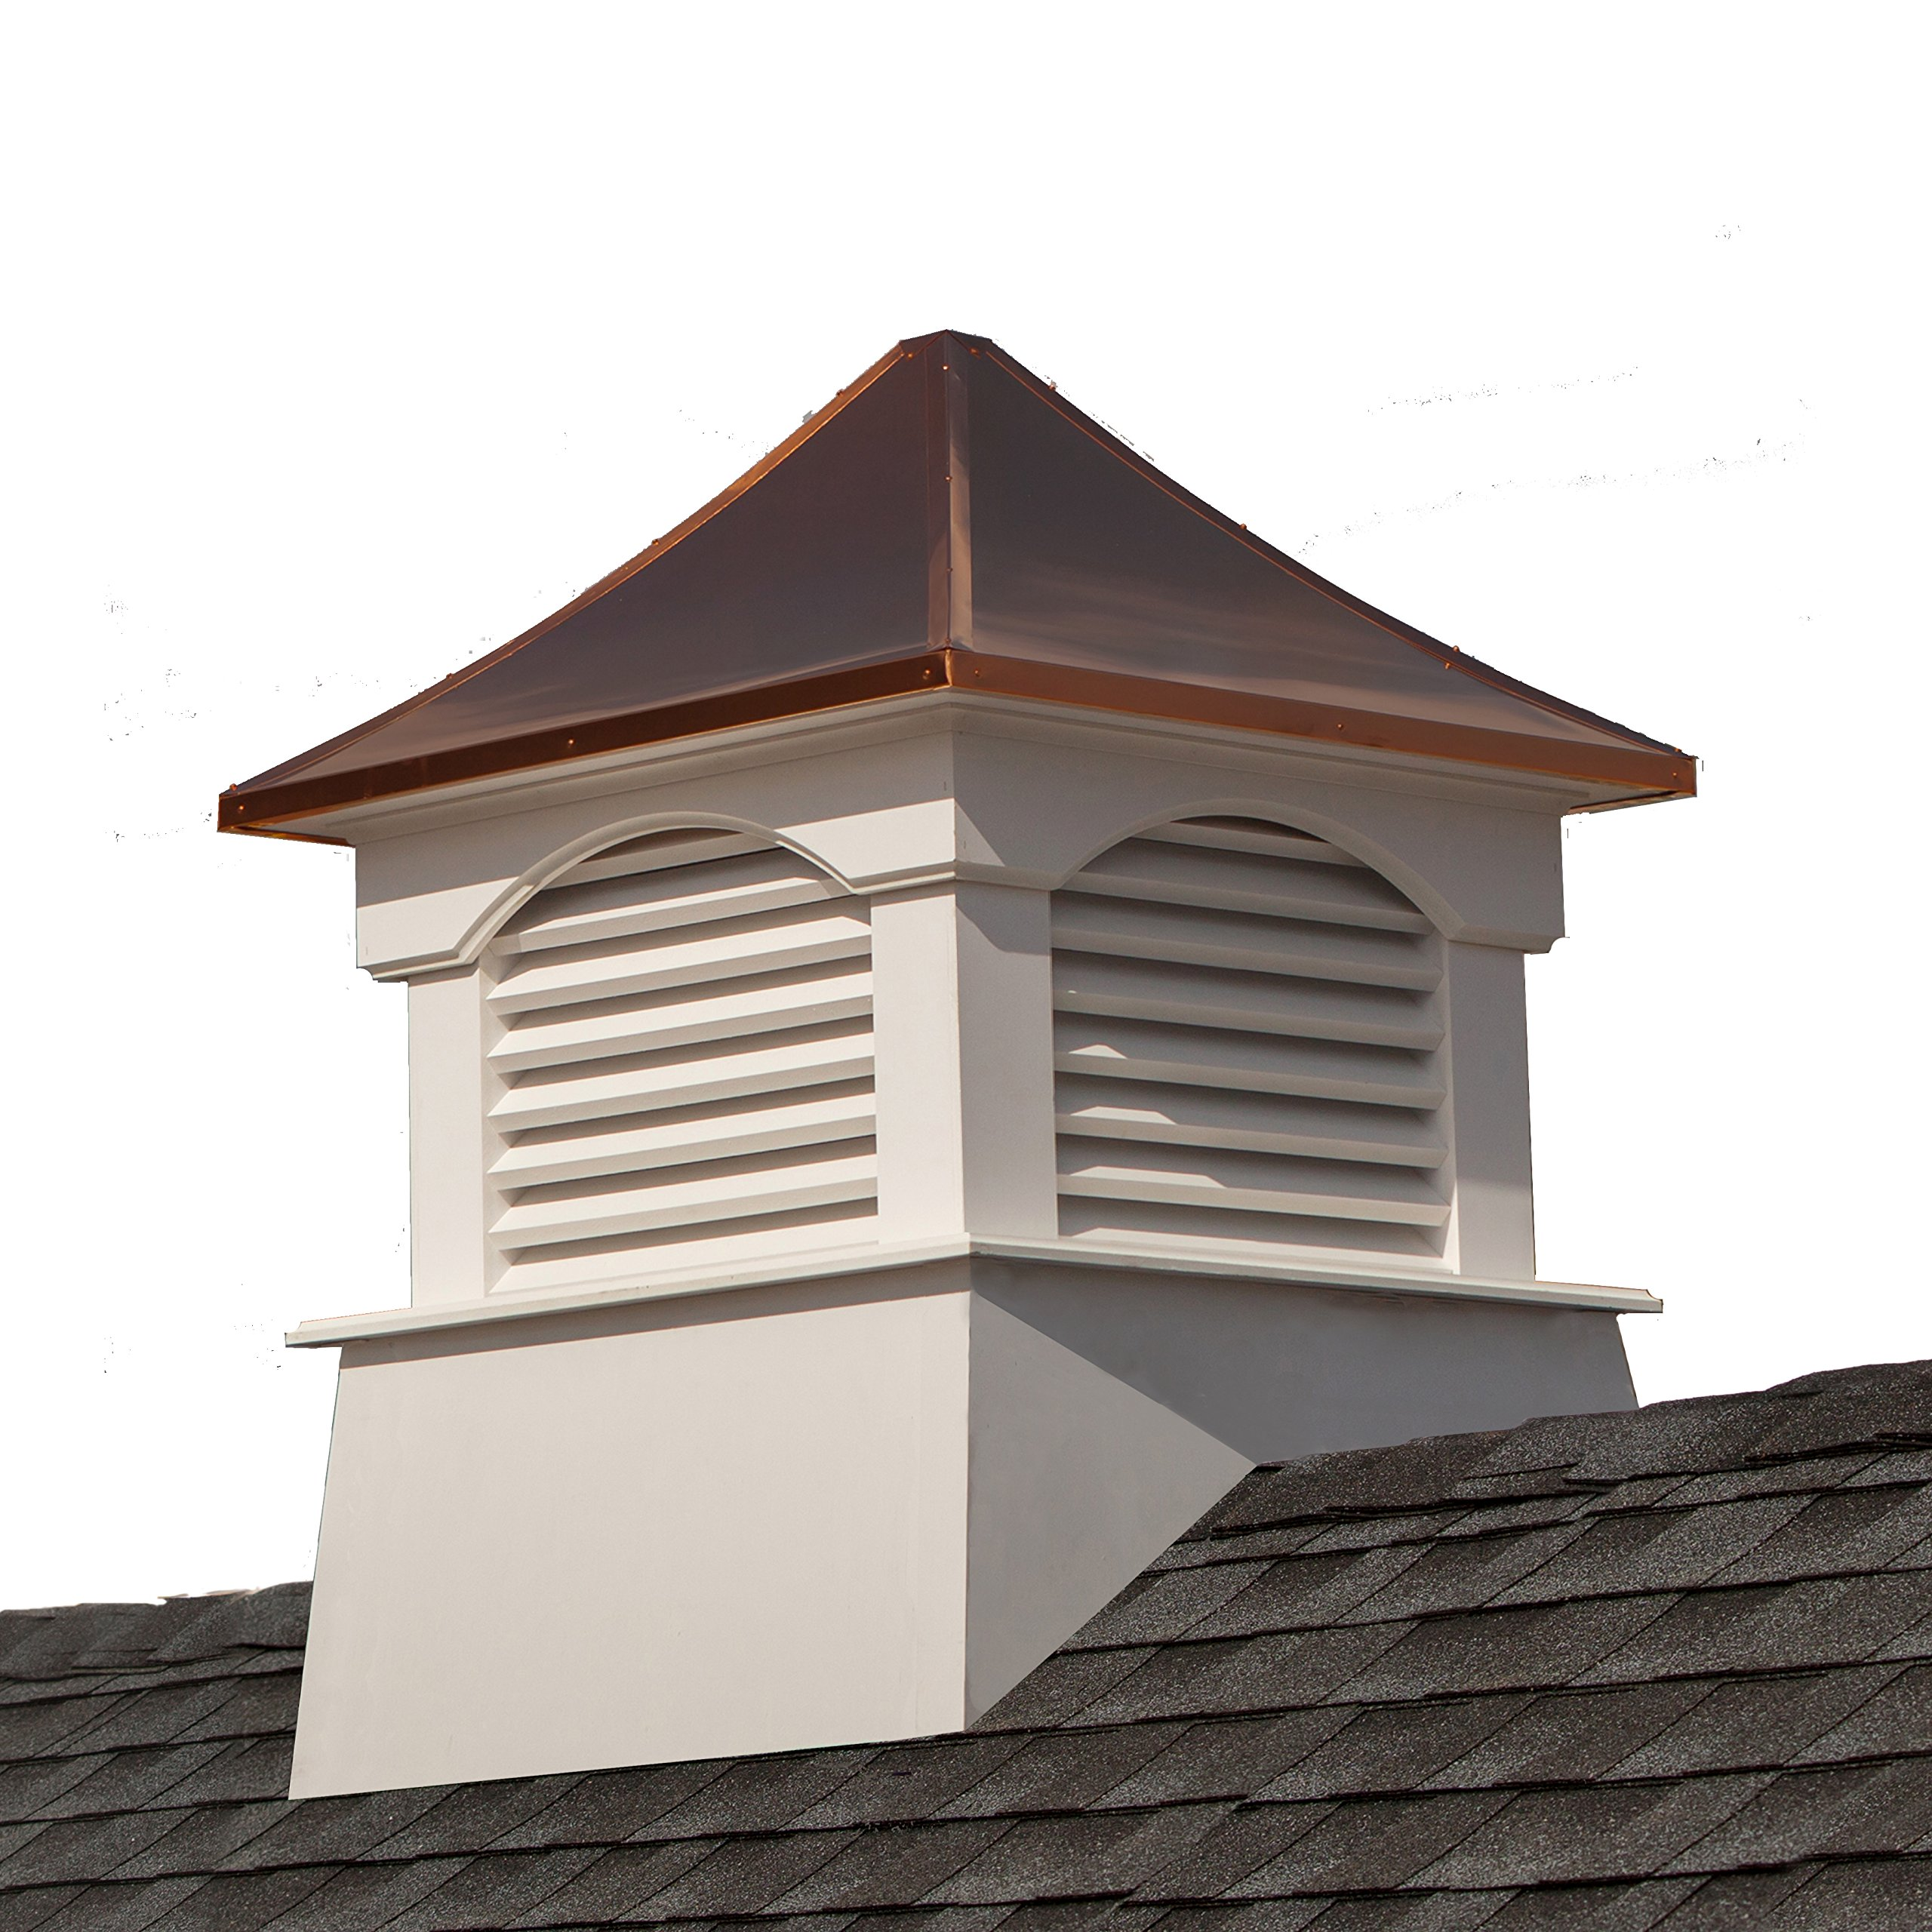 Good Directions Vinyl Coventry Louvered Cupola with Pure Copper Roof, Maintenance Free Solid Cellular PVC Vinyl, 42'' x 57'', Reinforced Roof and Louvers, Cupolas